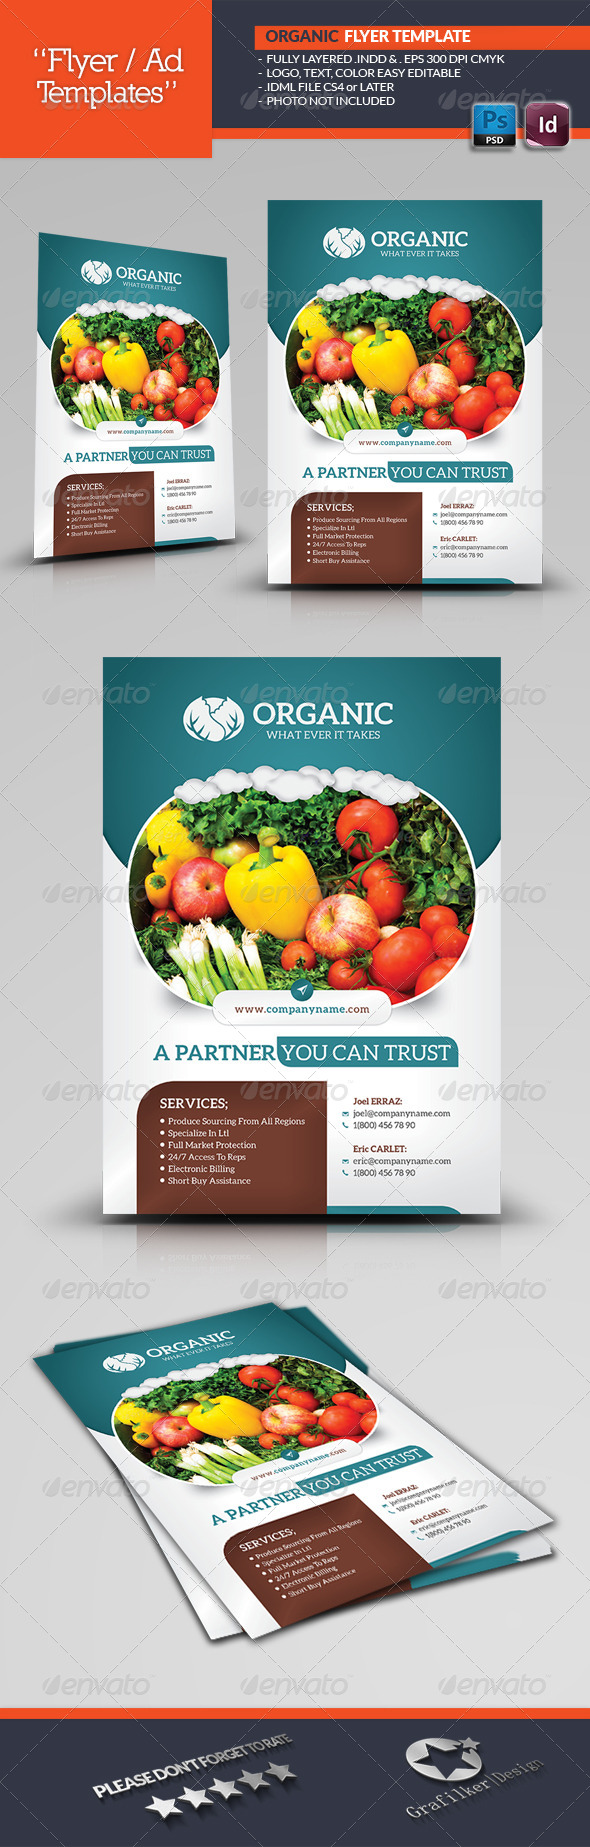 GraphicRiver Organic Flyer Templates 7013405